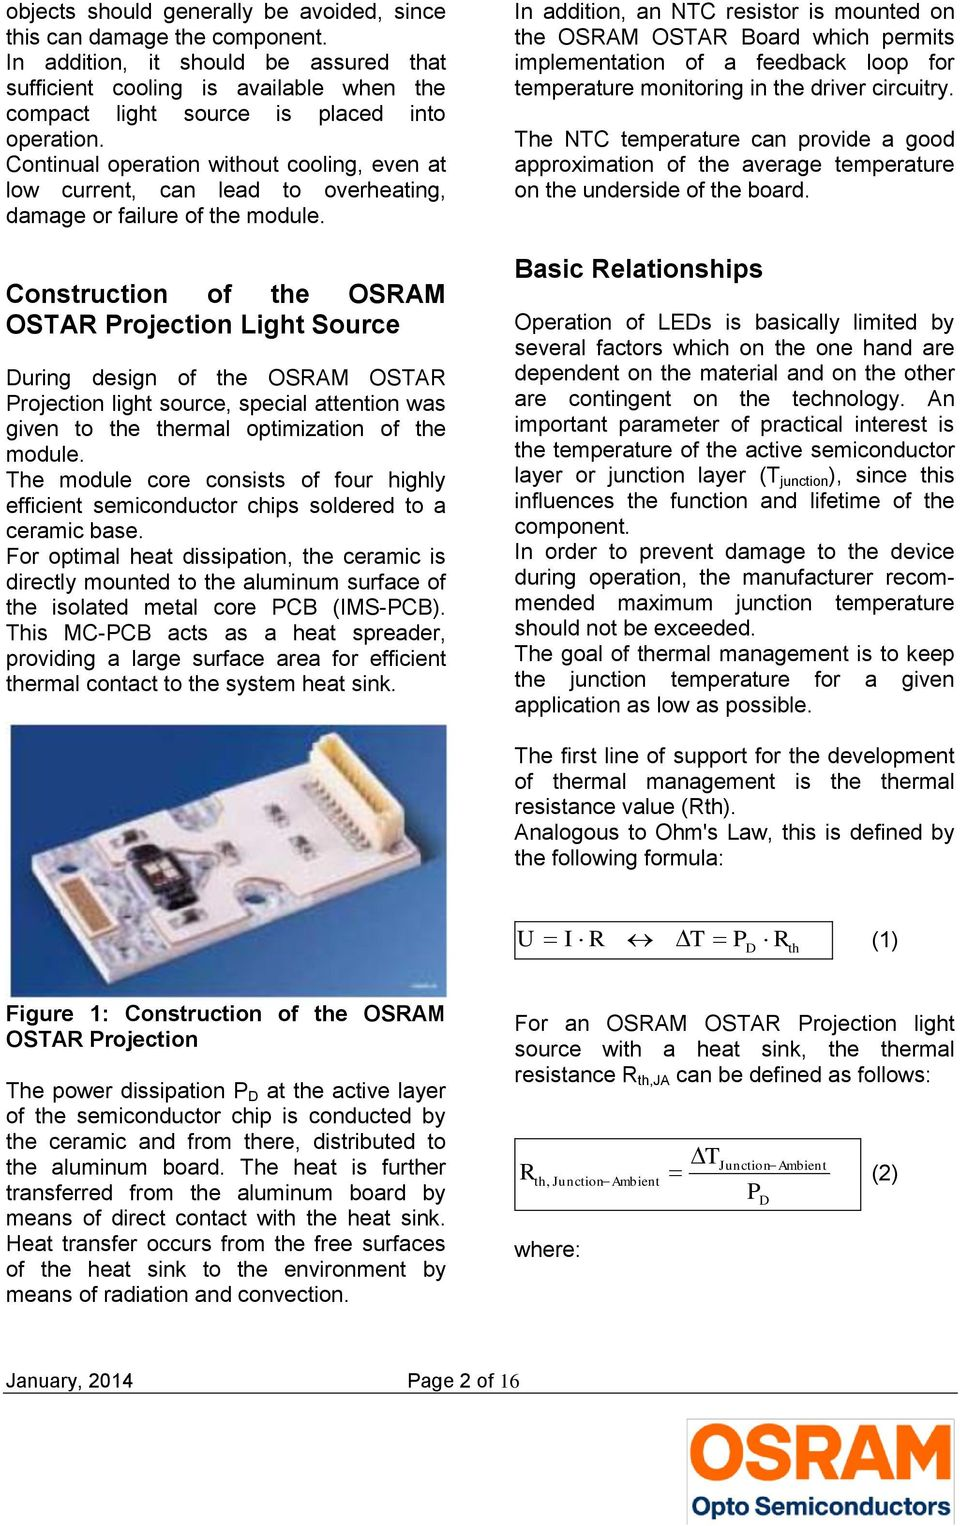 Construction o the OSRAM OSTAR Projection Light Source During design o the OSRAM OSTAR Projection light source, special attention was given to the thermal optimization o the module.